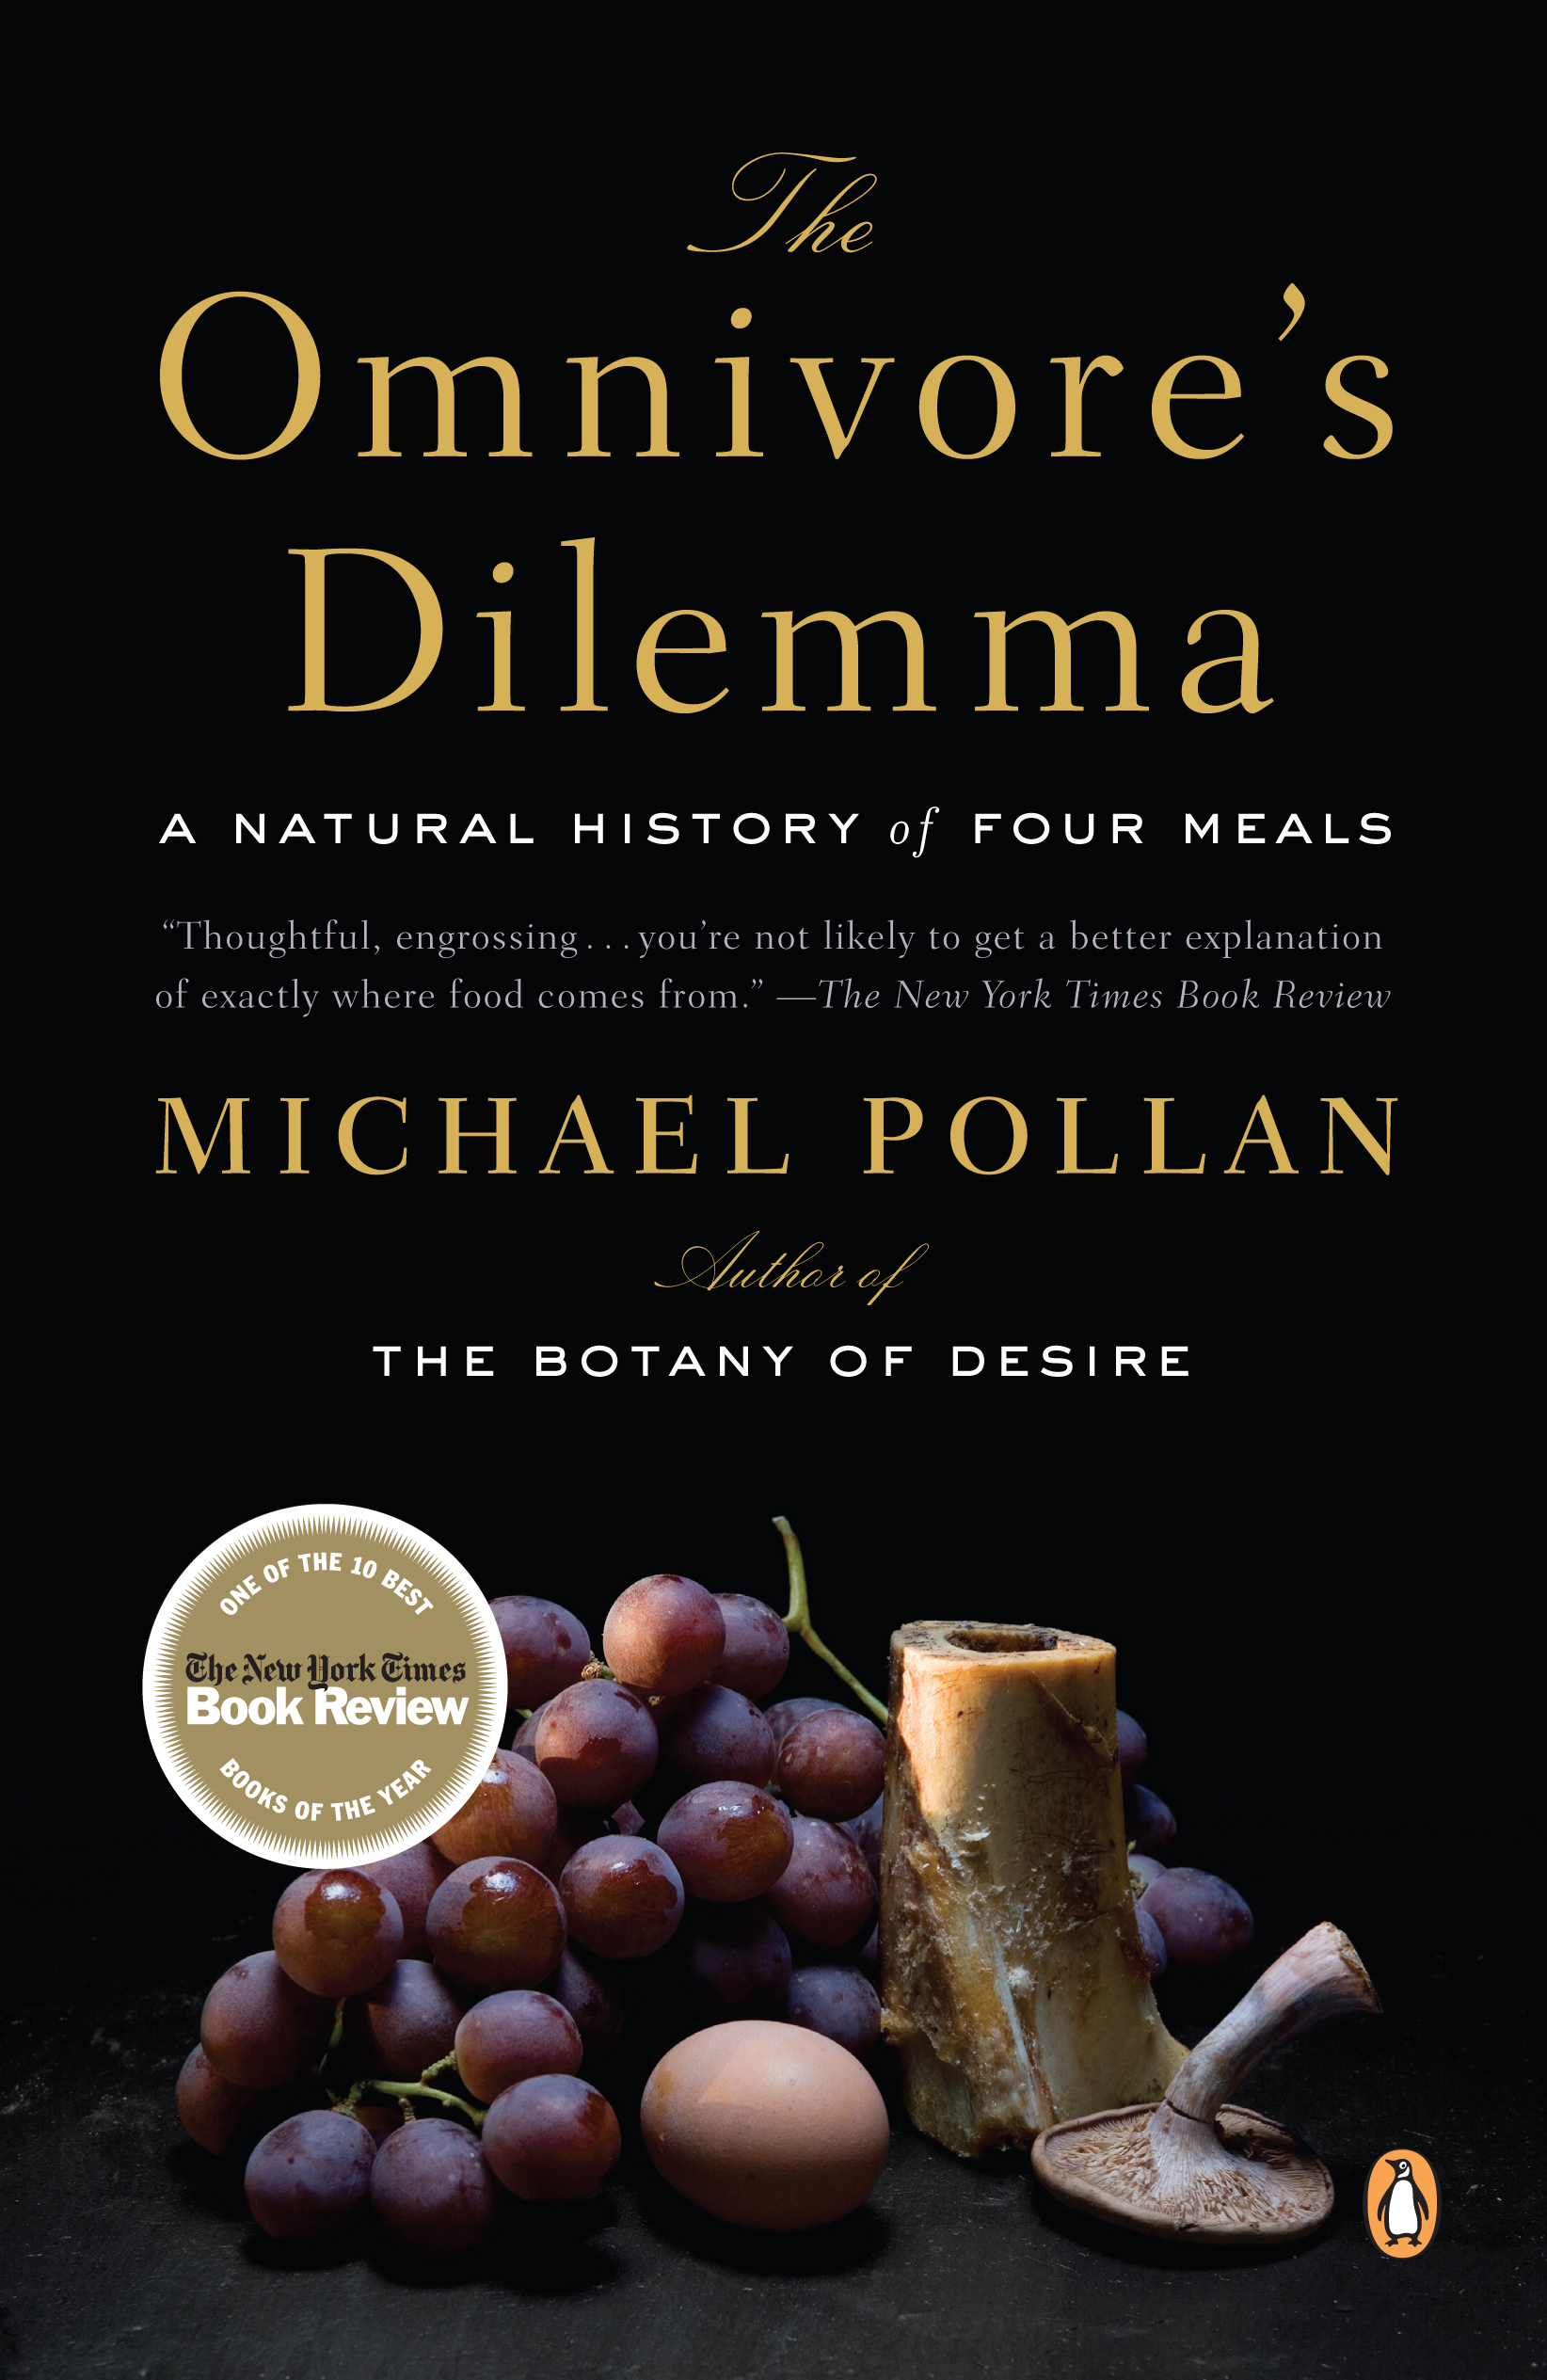 omnivores_dilemma_by_michael_pollan1